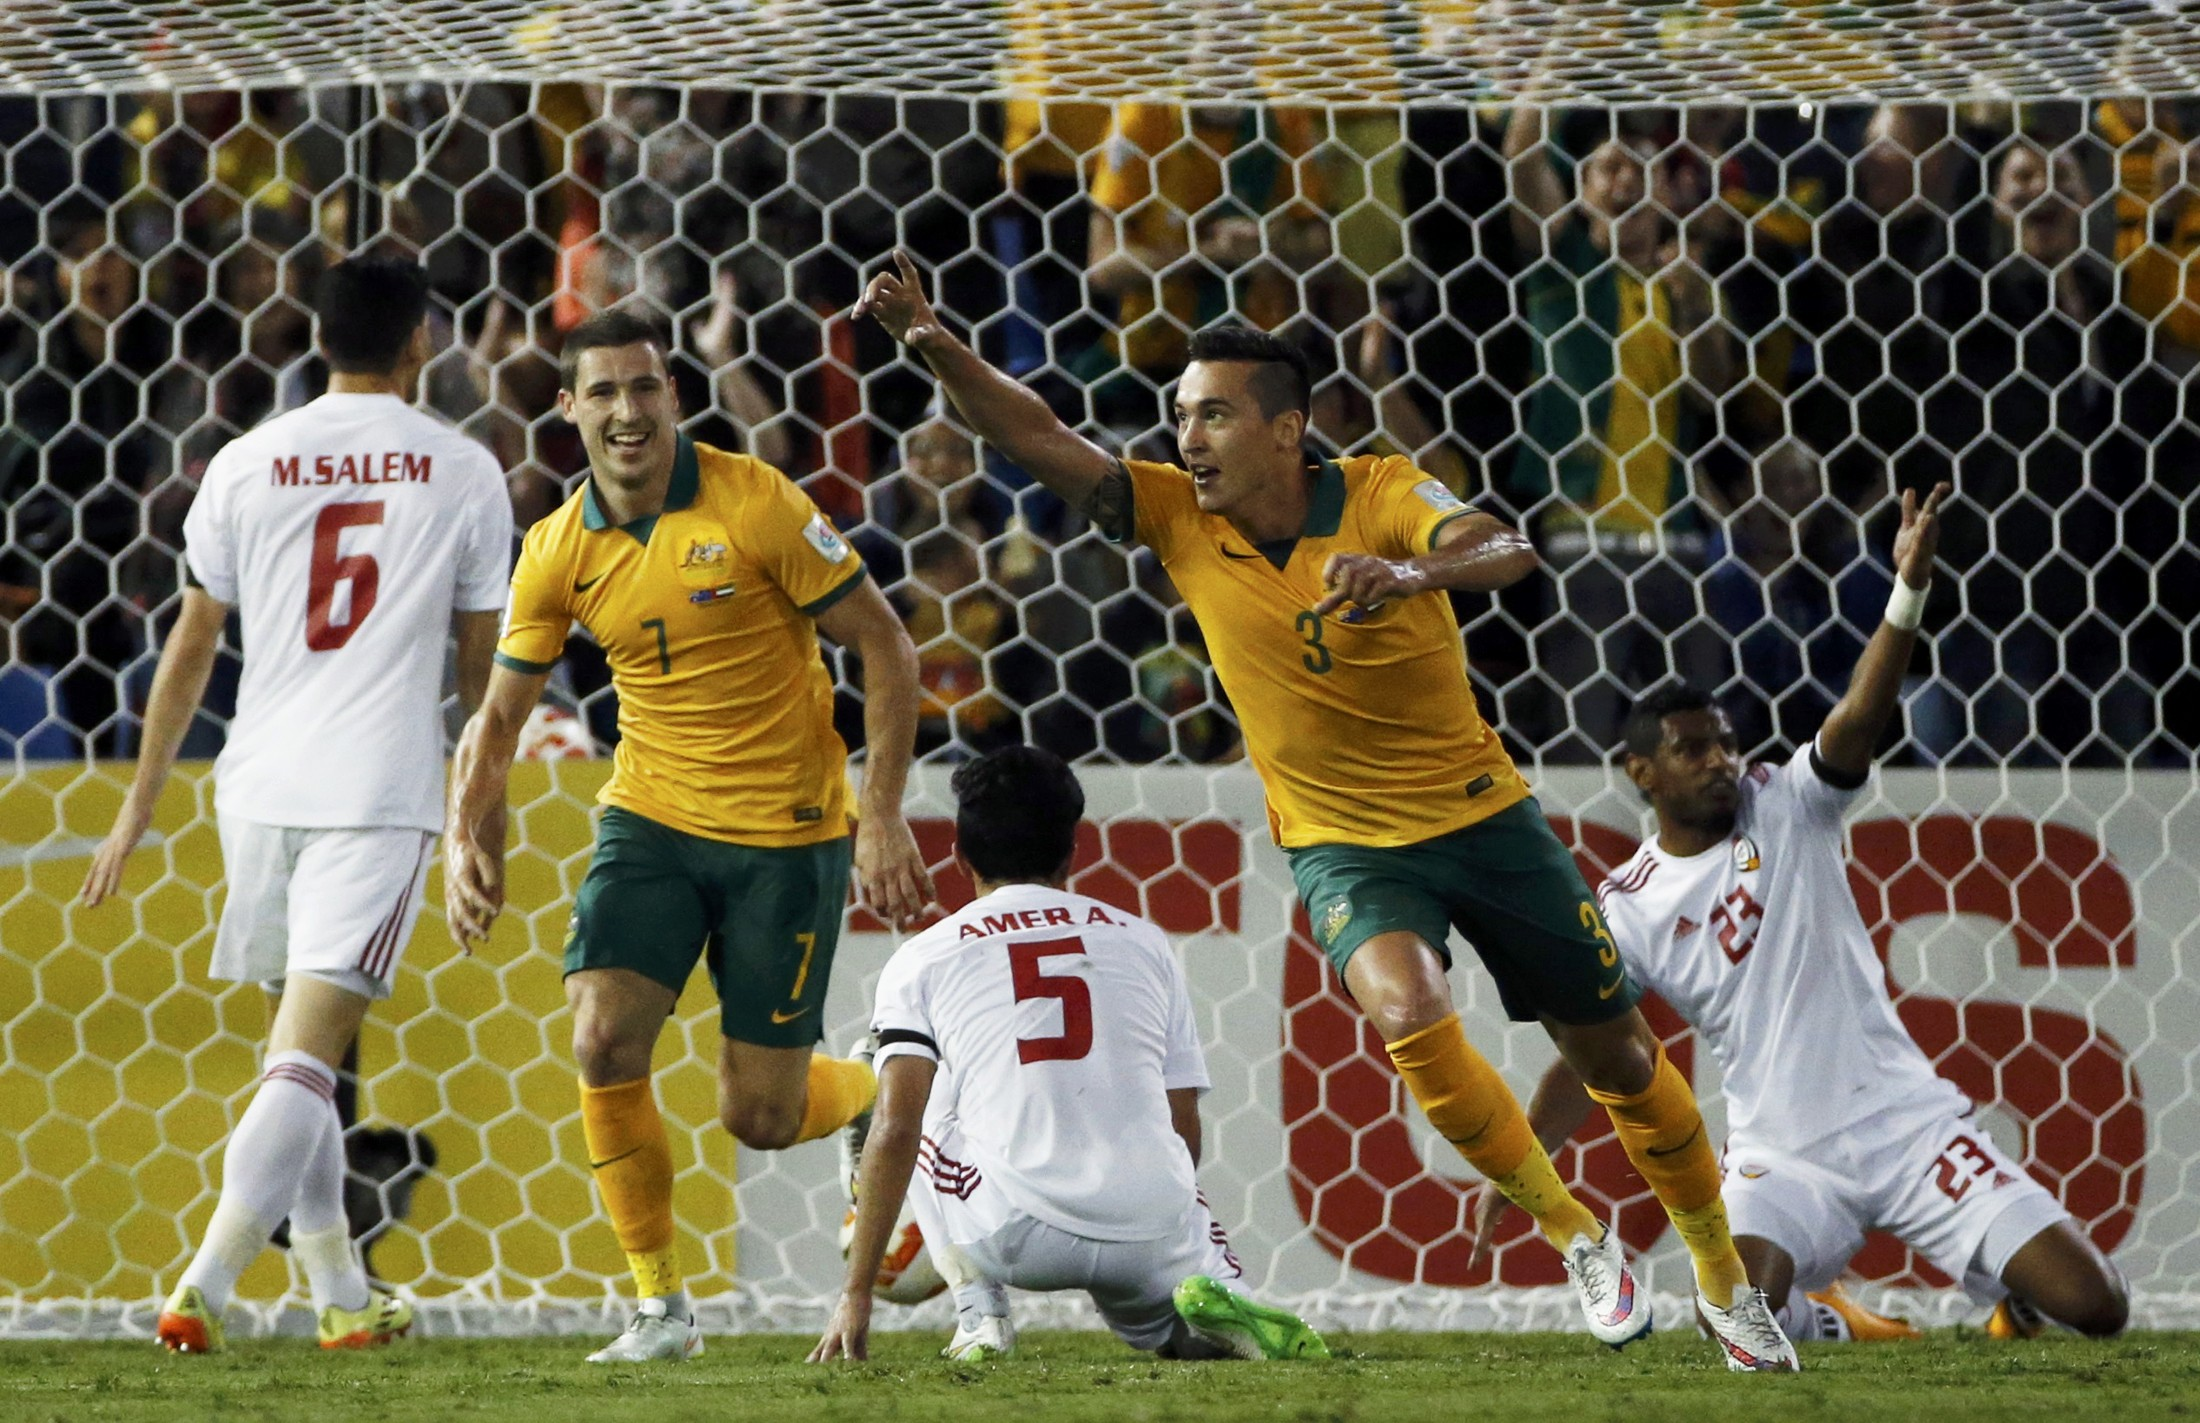 Australia's Jason Davidson (3) celebrates after scoring a goal against UAE during their Asian Cup semi-final soccer match at the Newcastle Stadium in Newcastle January 27, 2015.   REUTERS/Edgar Su (AUSTRALIA  - Tags: SPORT SOCCER)